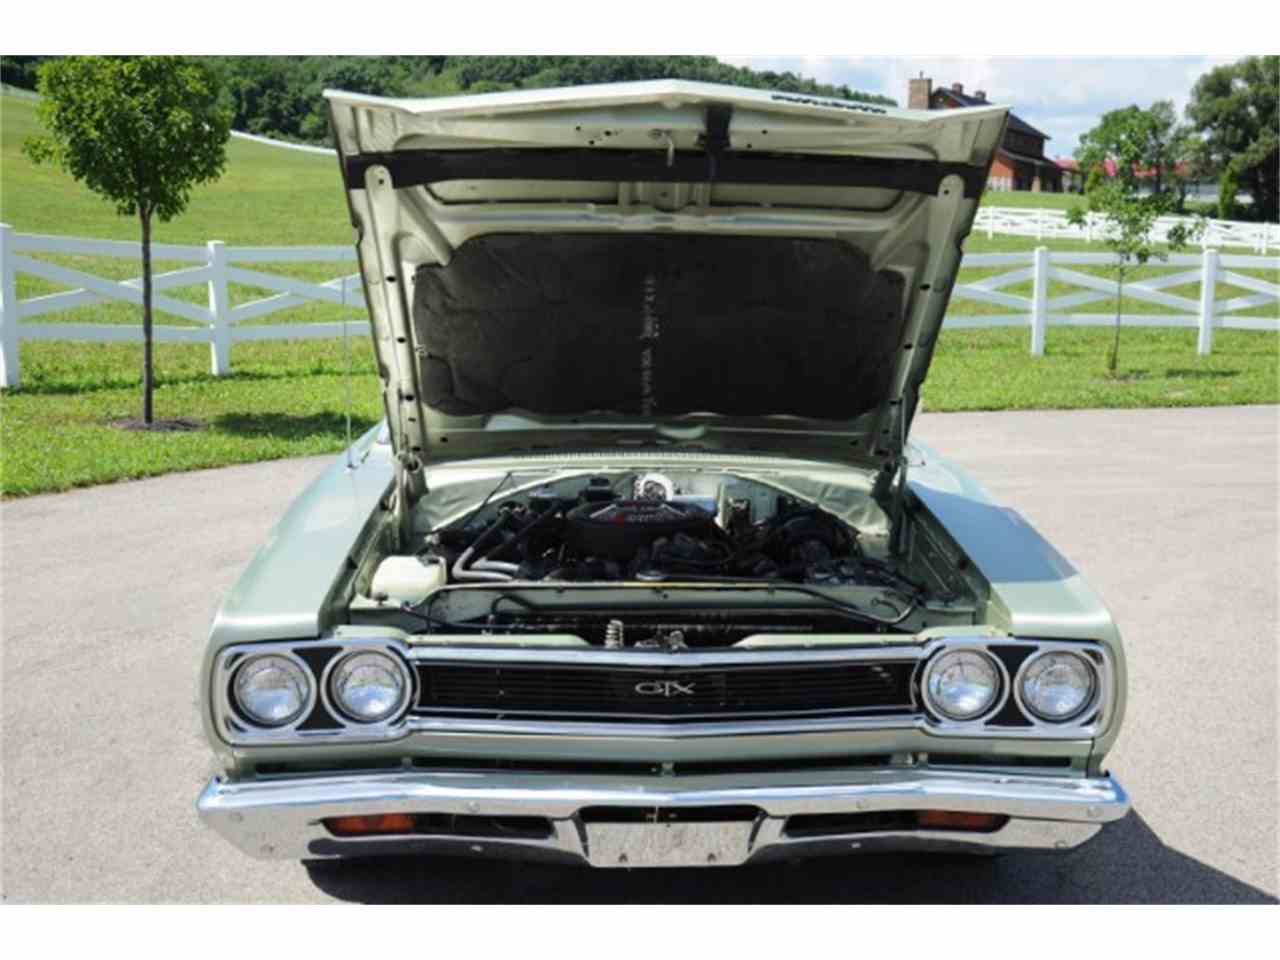 1968 Plymouth Gtx For Sale In Indiana Pennsylvania 15701 on trucks with a 440 magnum engine